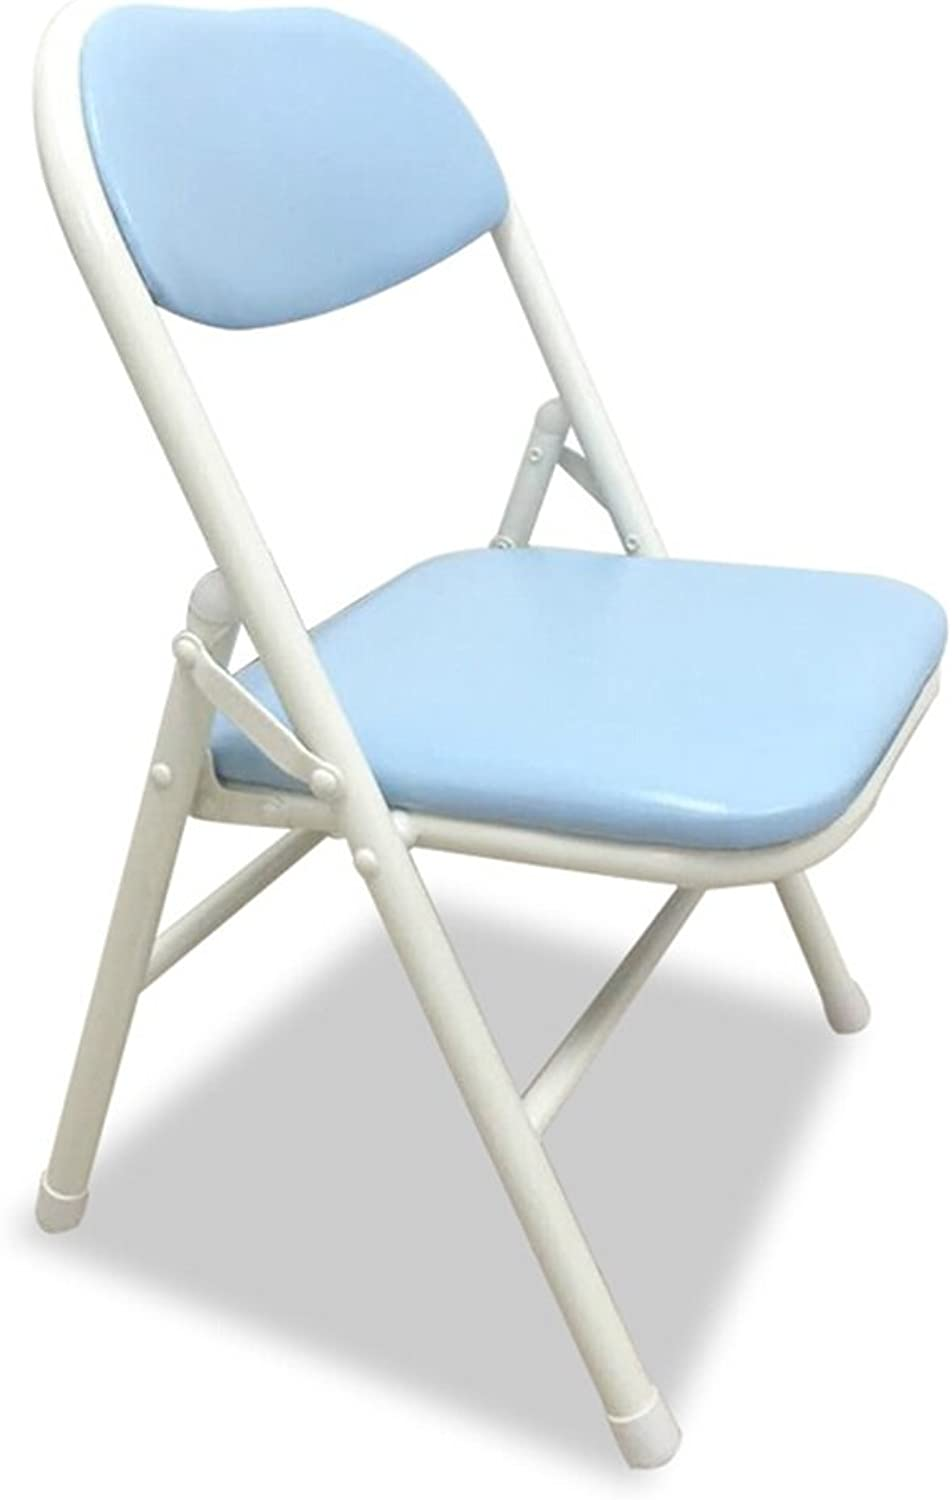 Camping Chair Folding Chair Student Portable Backrest Small Chair